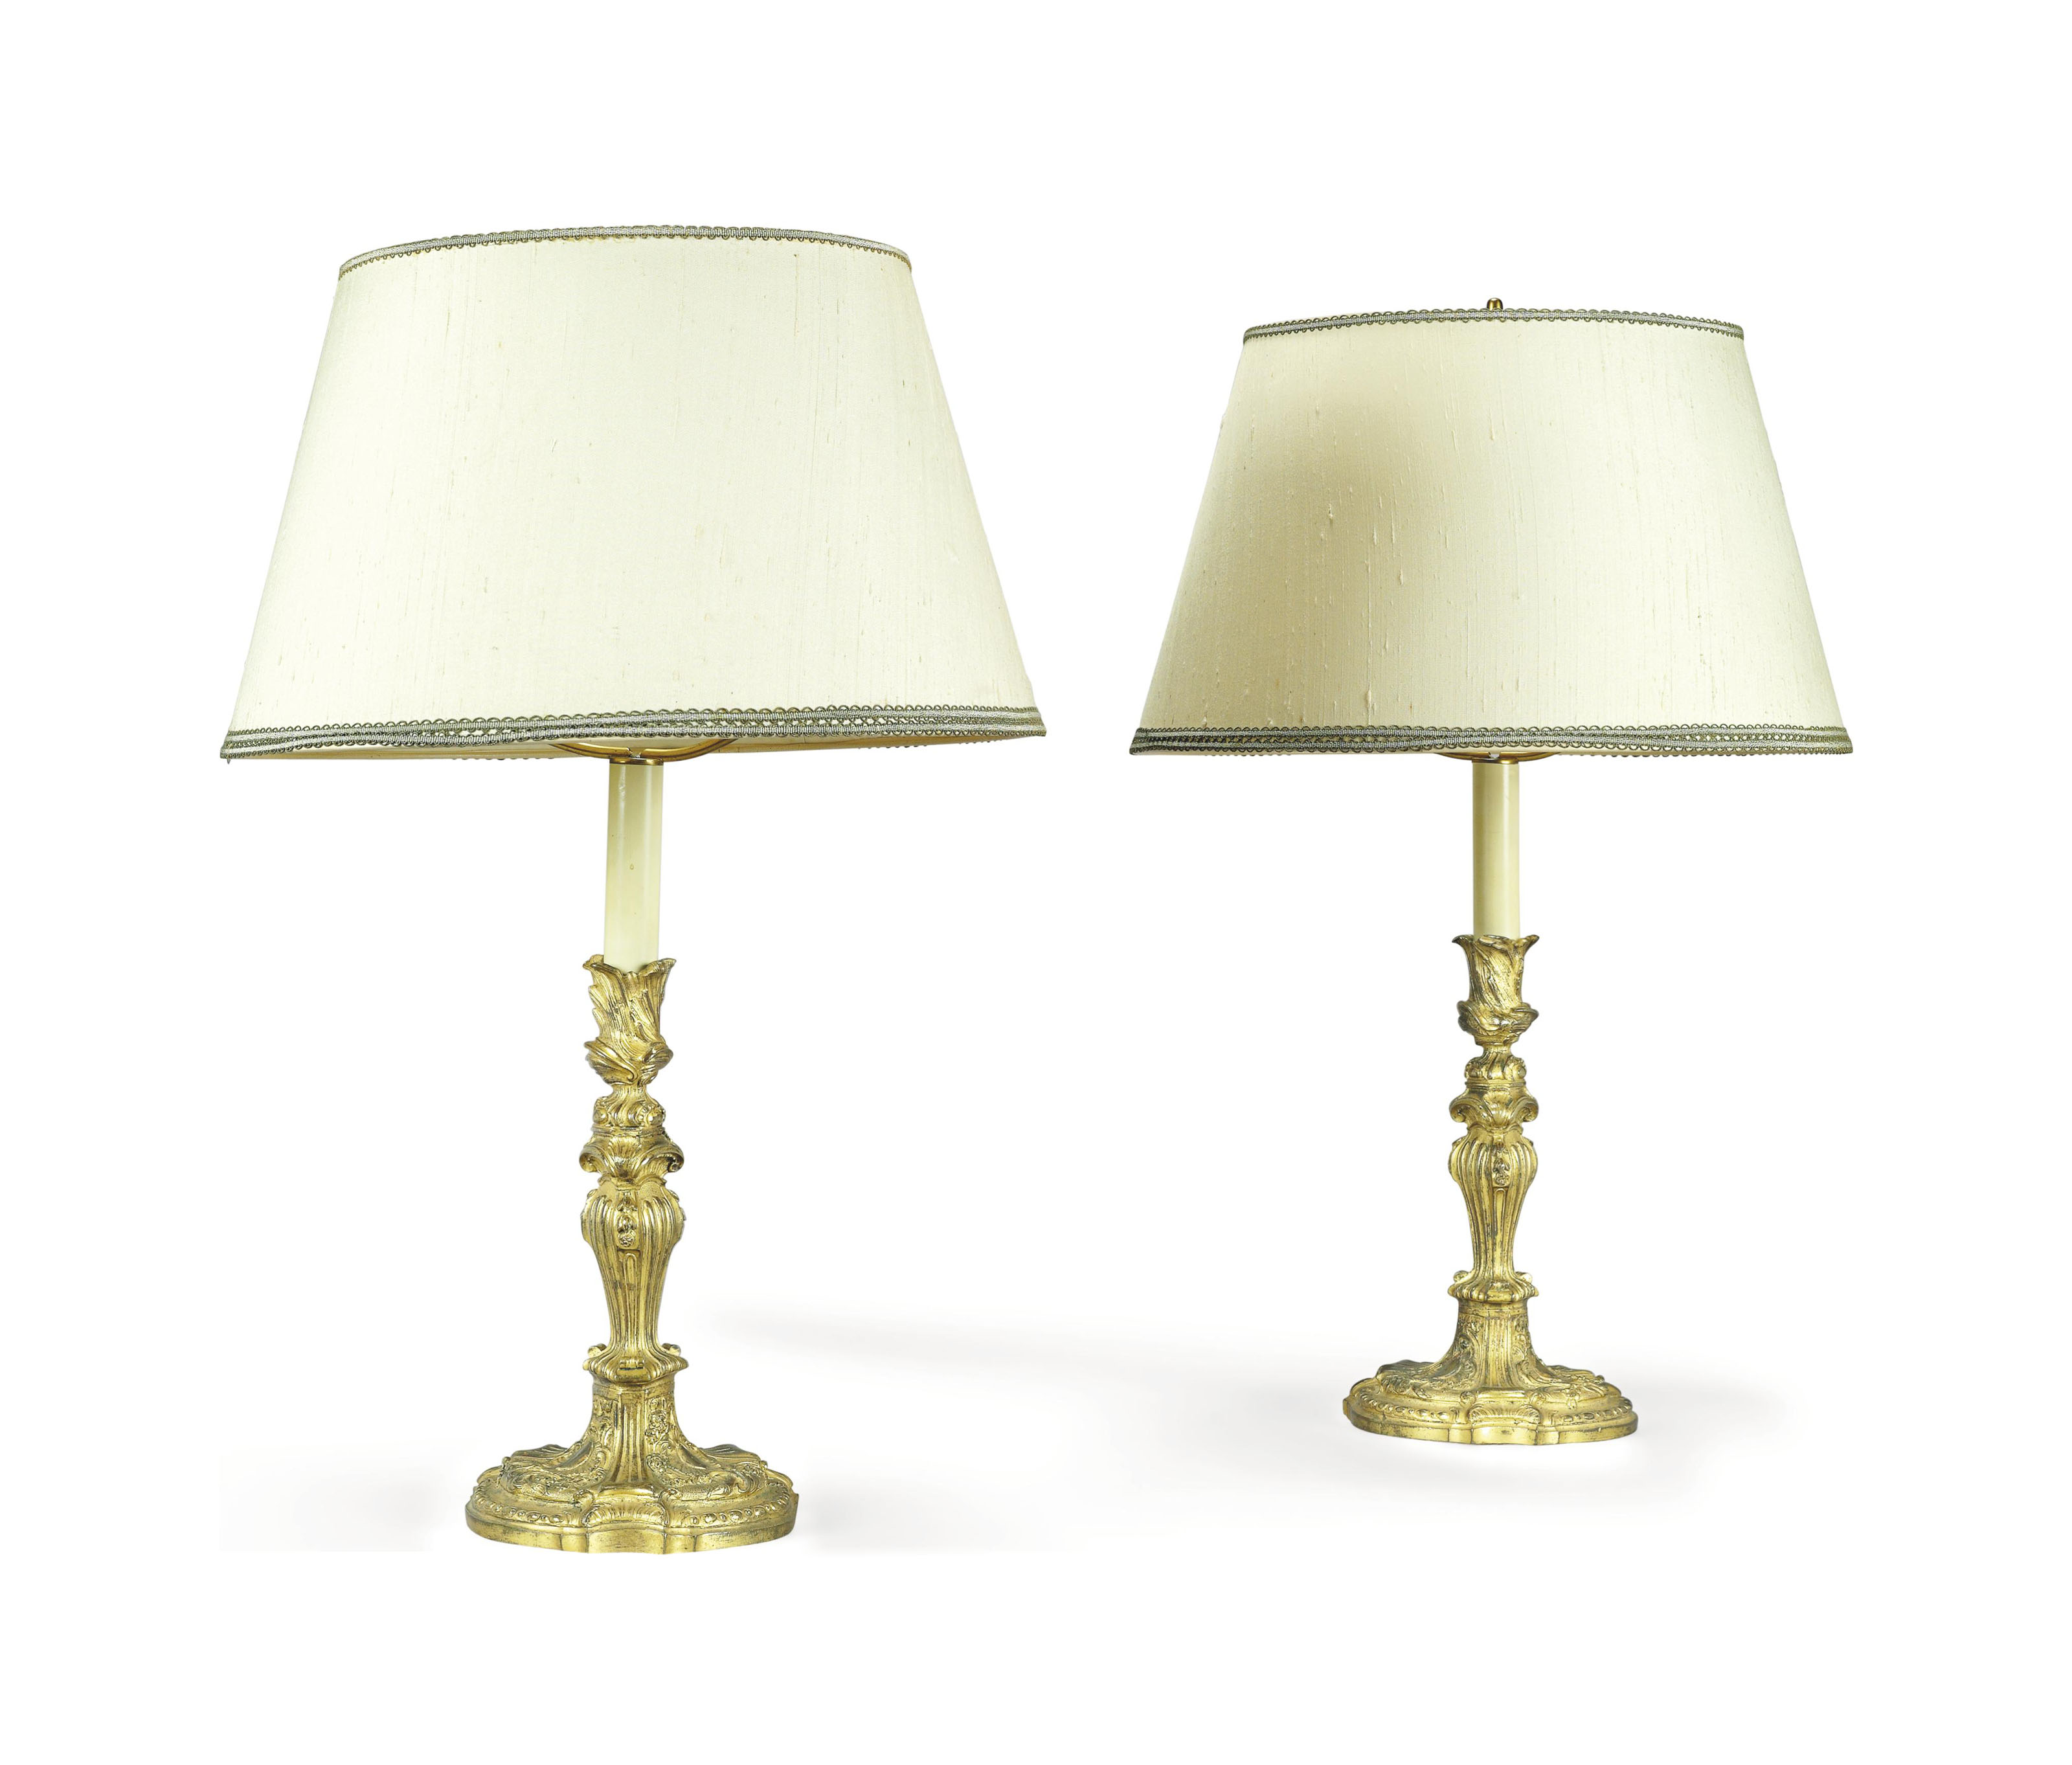 A PAIR OF REGENCE ORMOLU CANDLESTICKS MOUNTED AS TABLE LAMPS